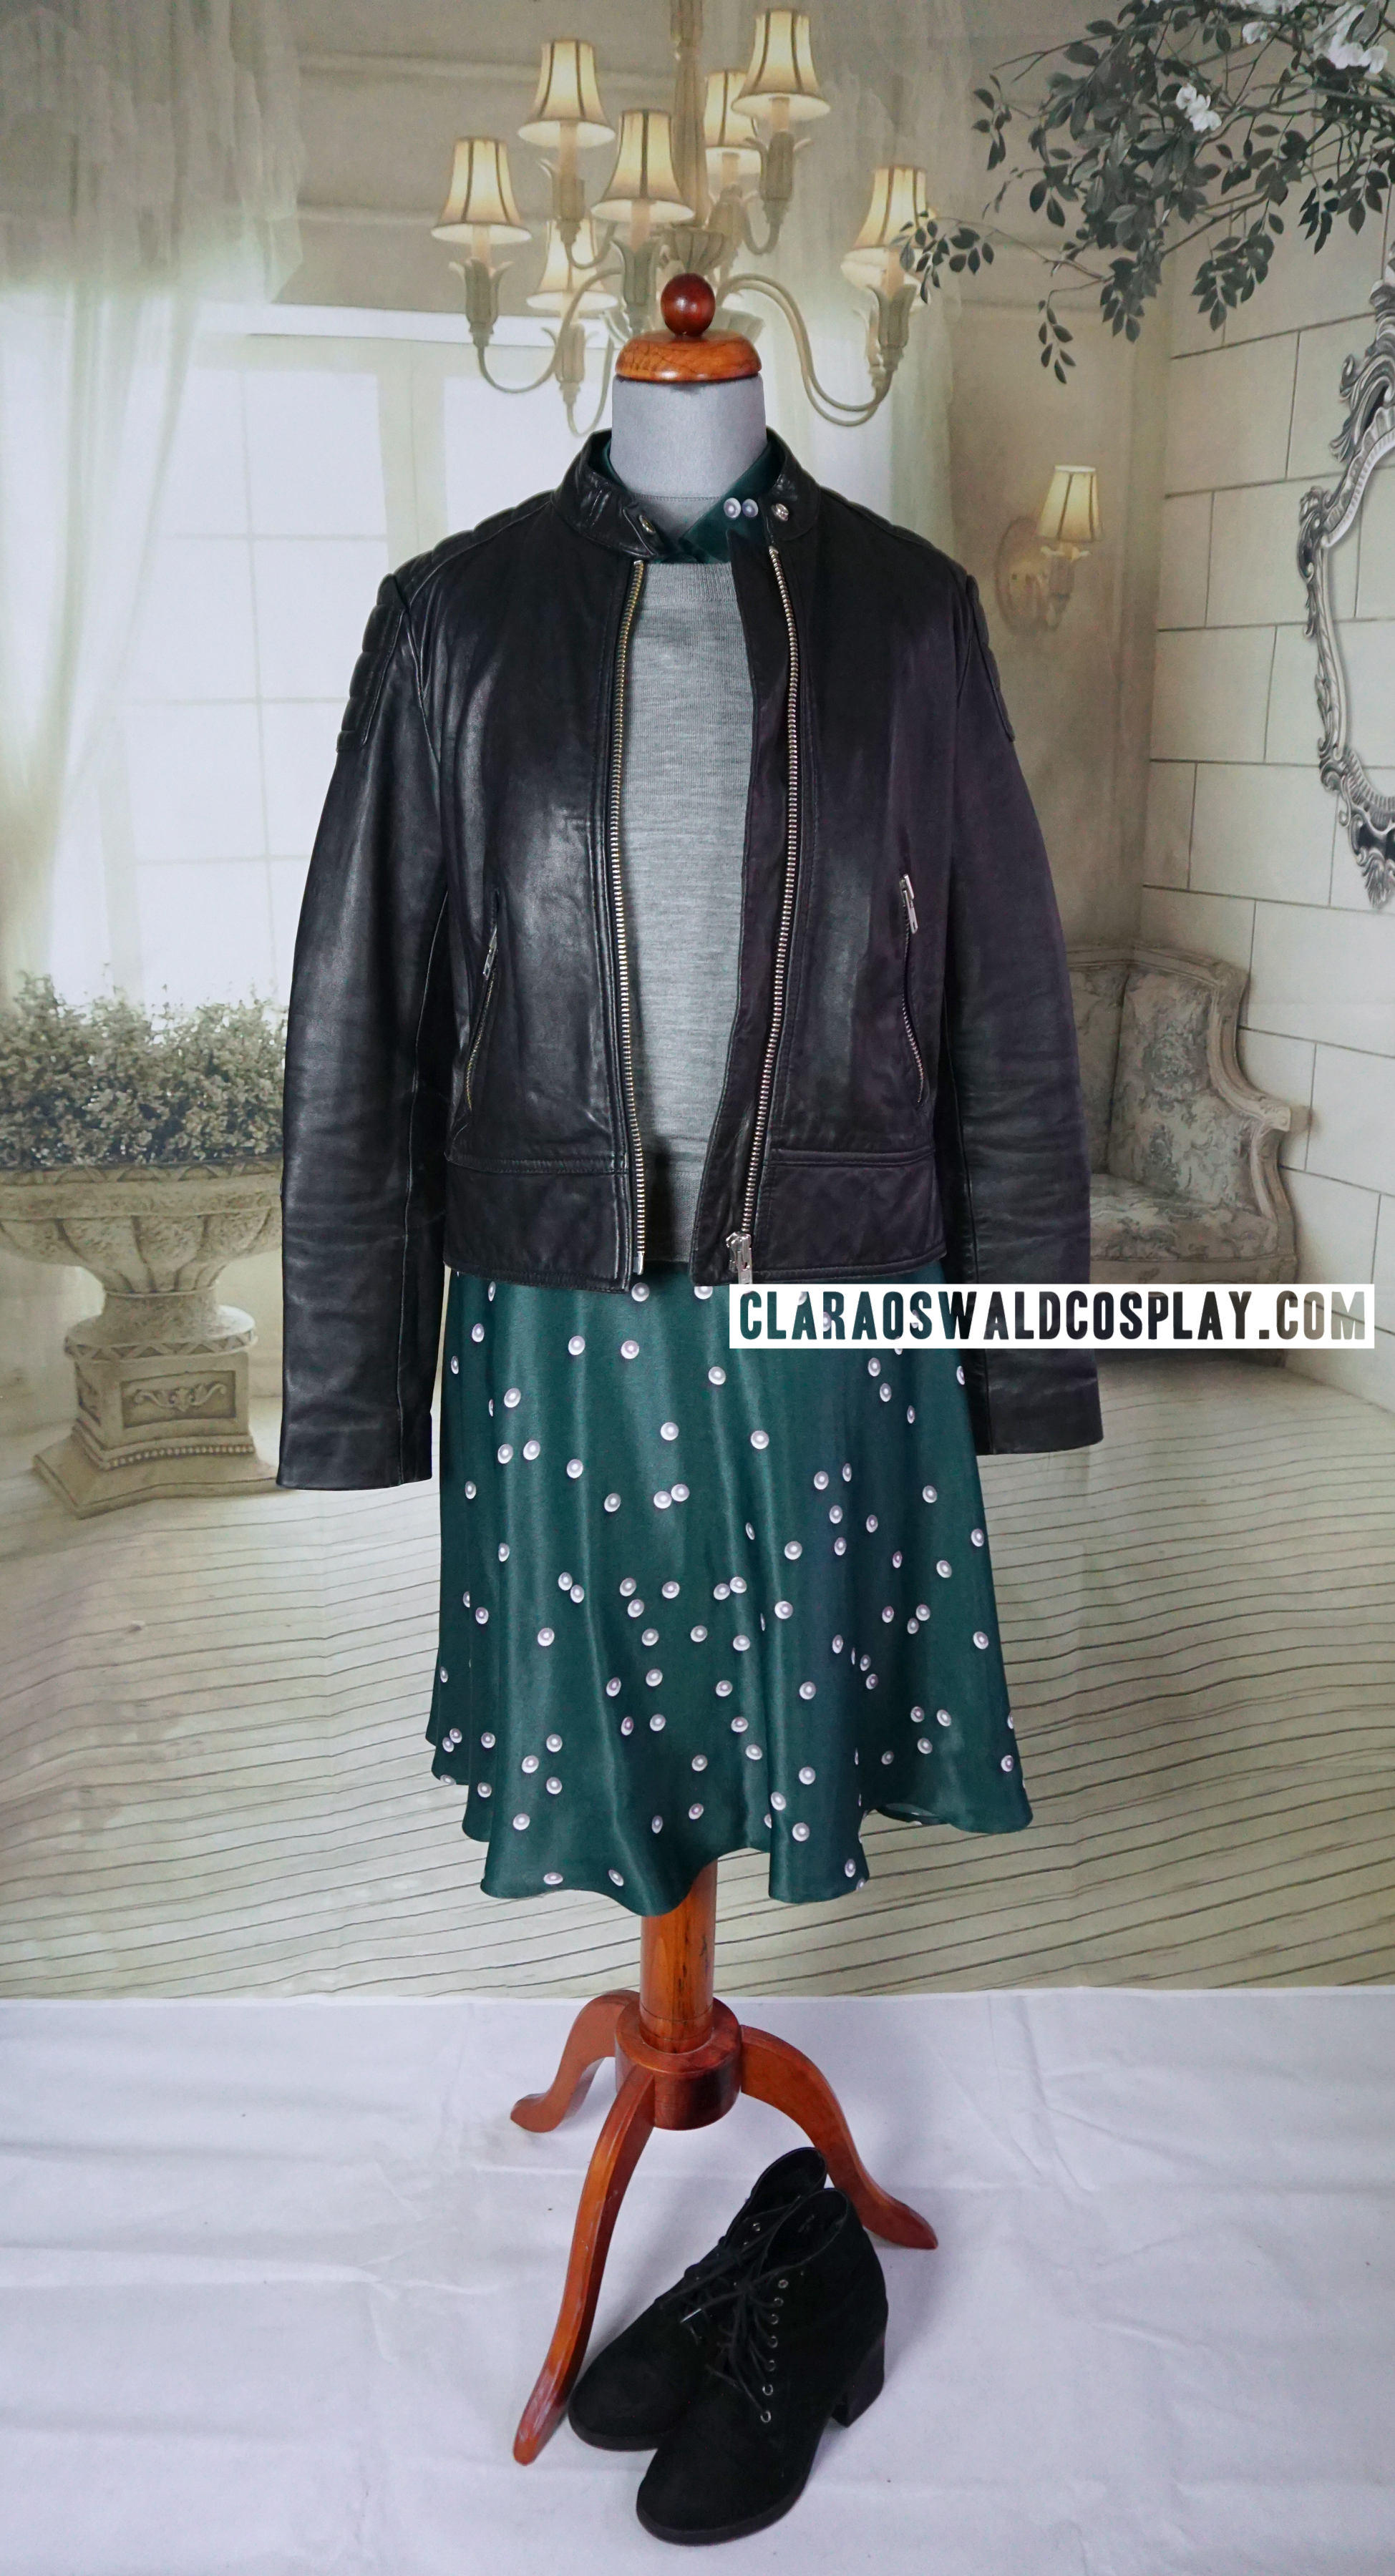 Clara Oswald's Magician's Apprentice / Witch's Familiar Outfit featuring the &Other Stories Leather Jacket, &Other Stories Pearl Print Dress and J.Crew Merino Jumper